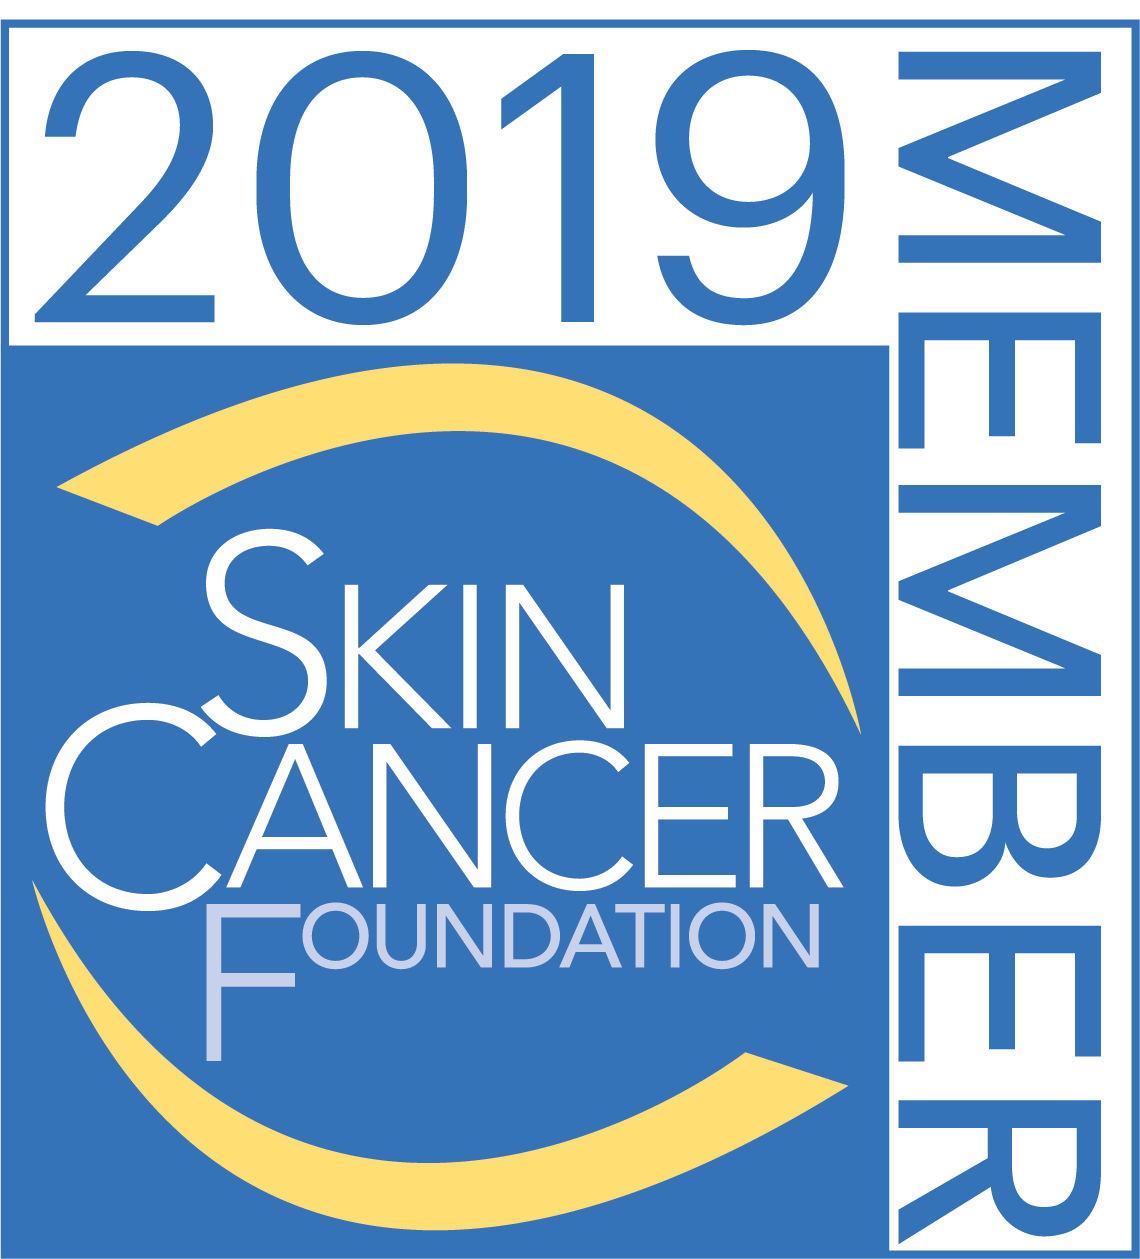 Skin Cancer Foundation Mohs